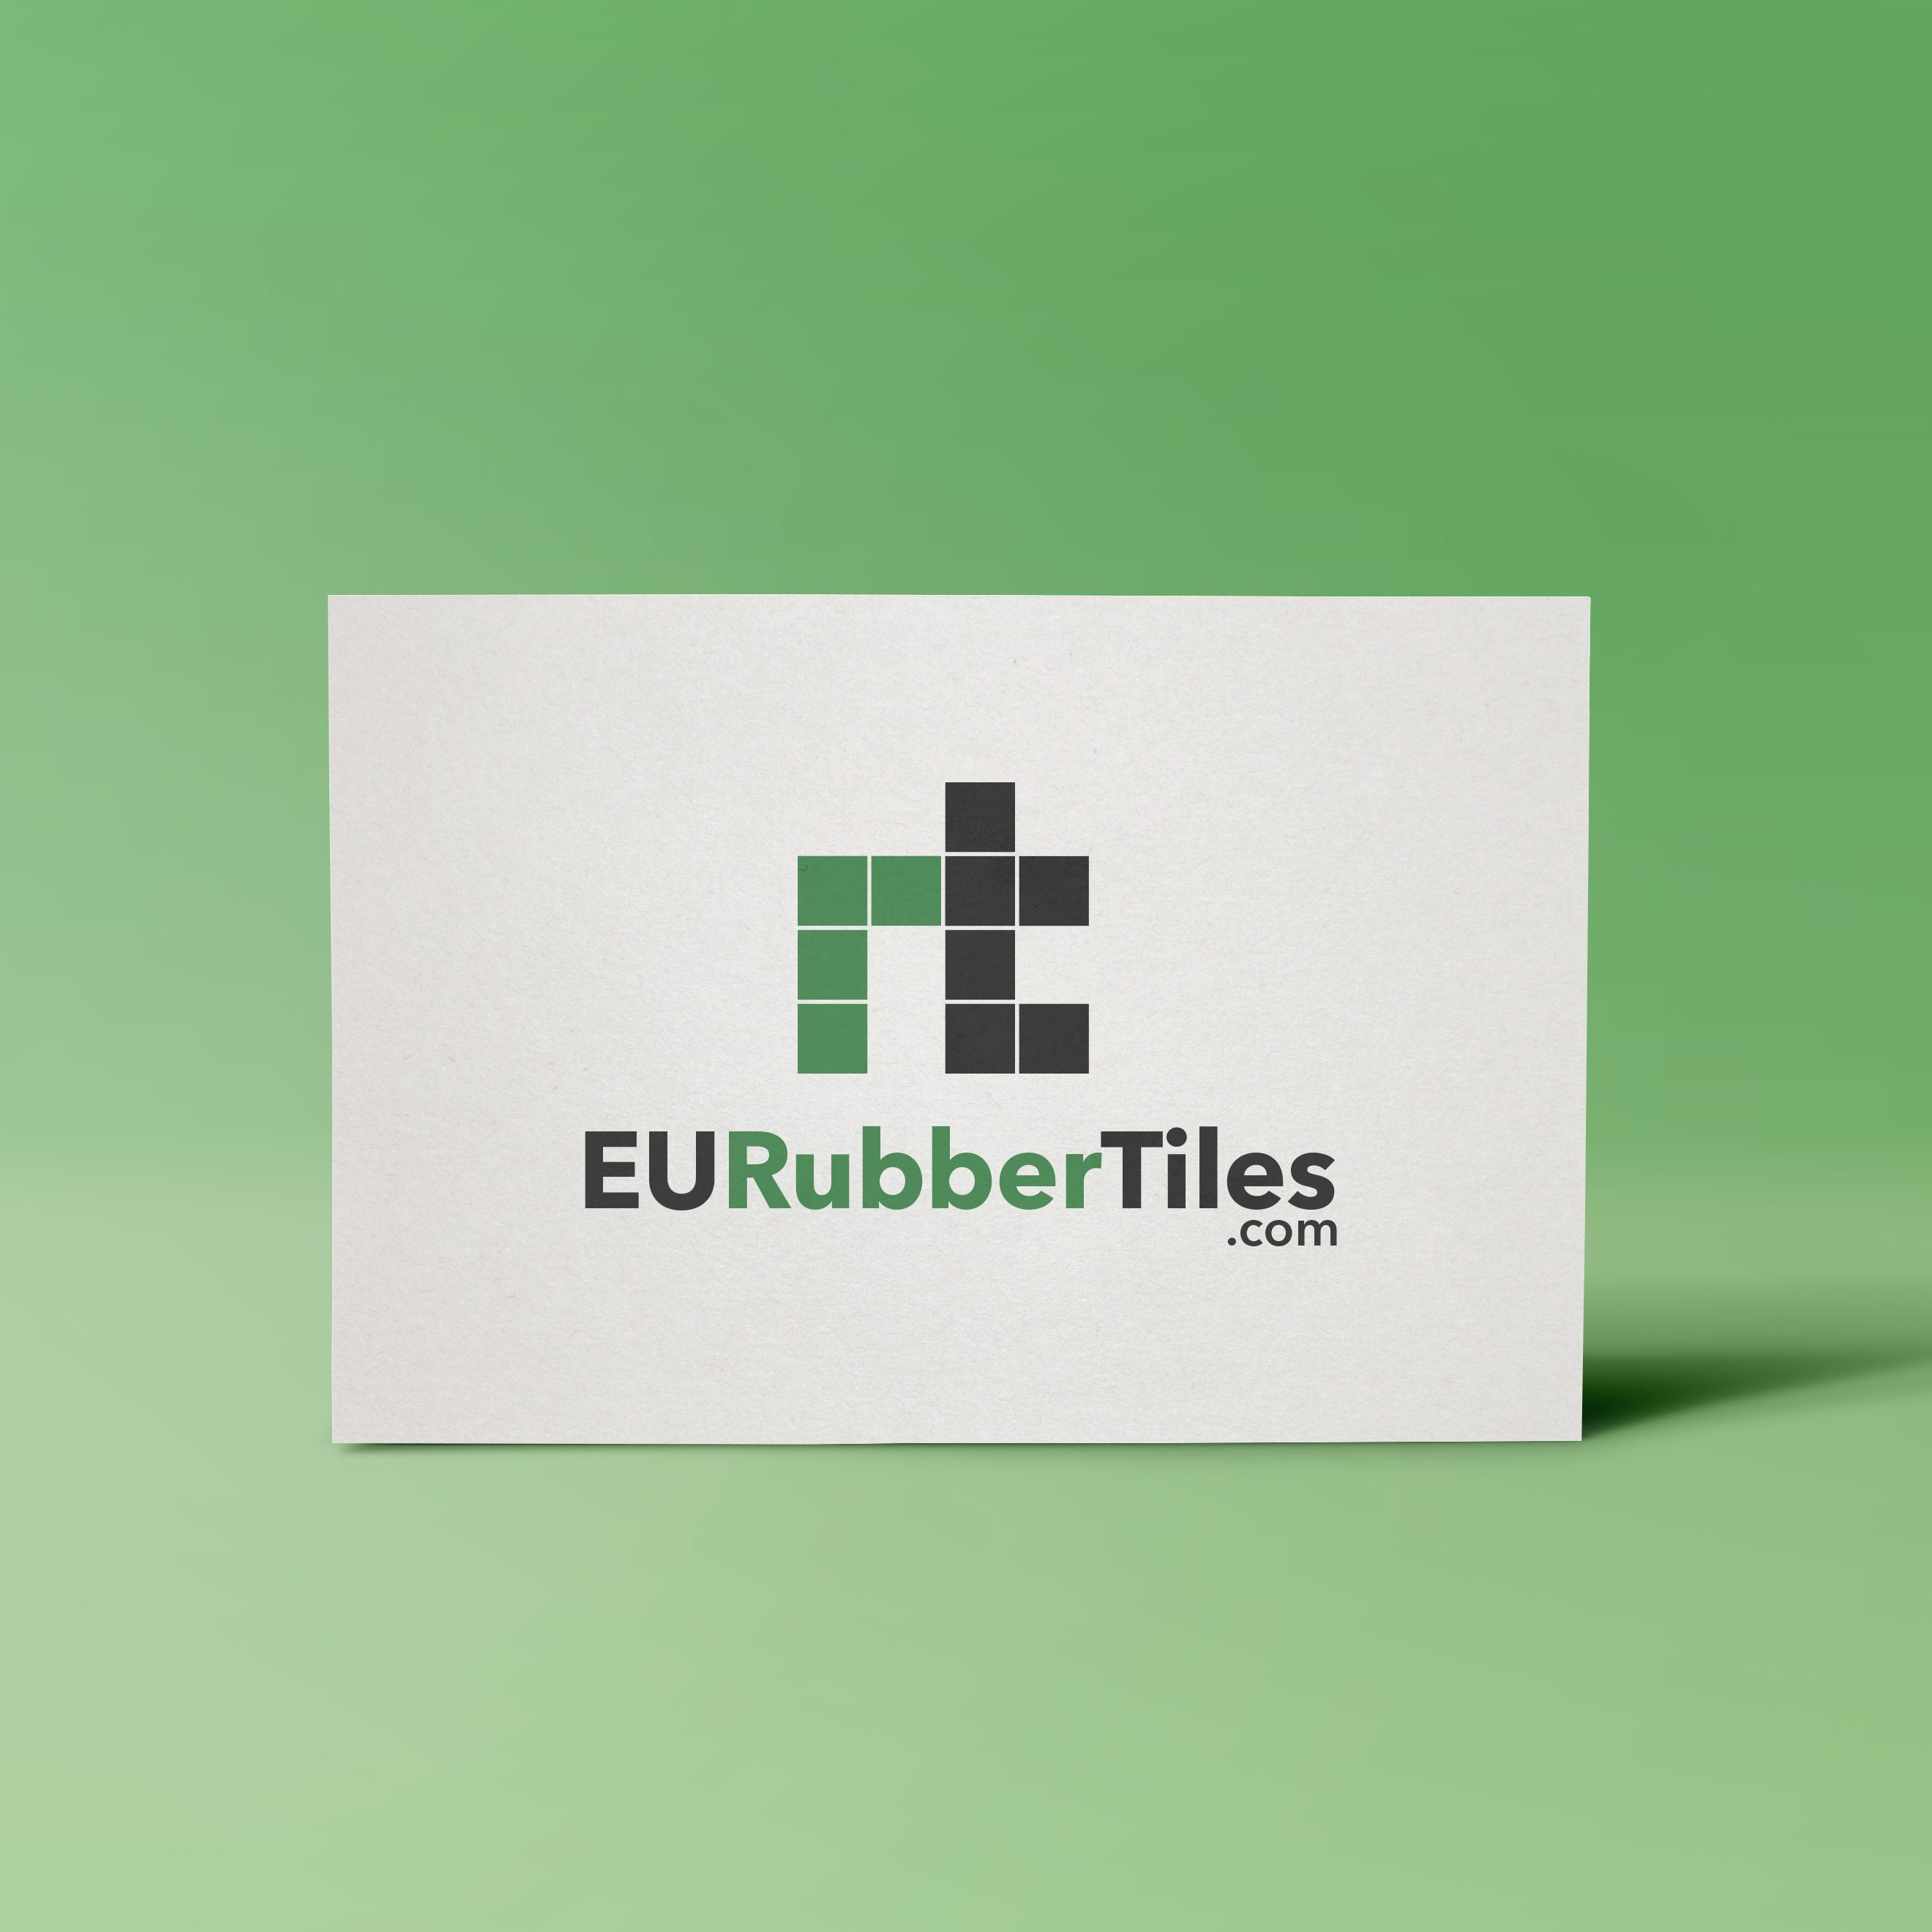 Logo Design for a Flooring company | IKOMS. Graphic deign